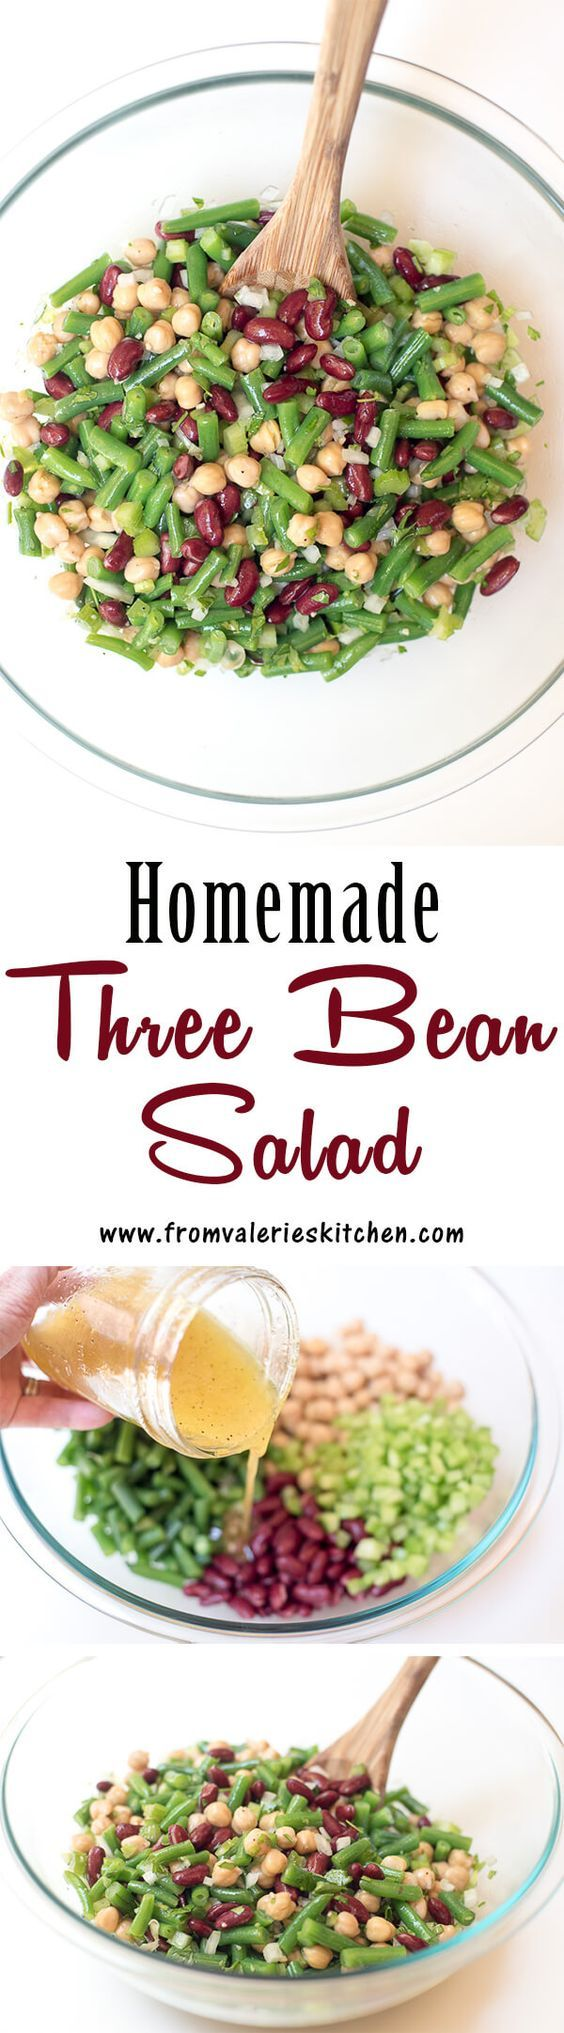 HOMEMADE THREE BEAN SALAD